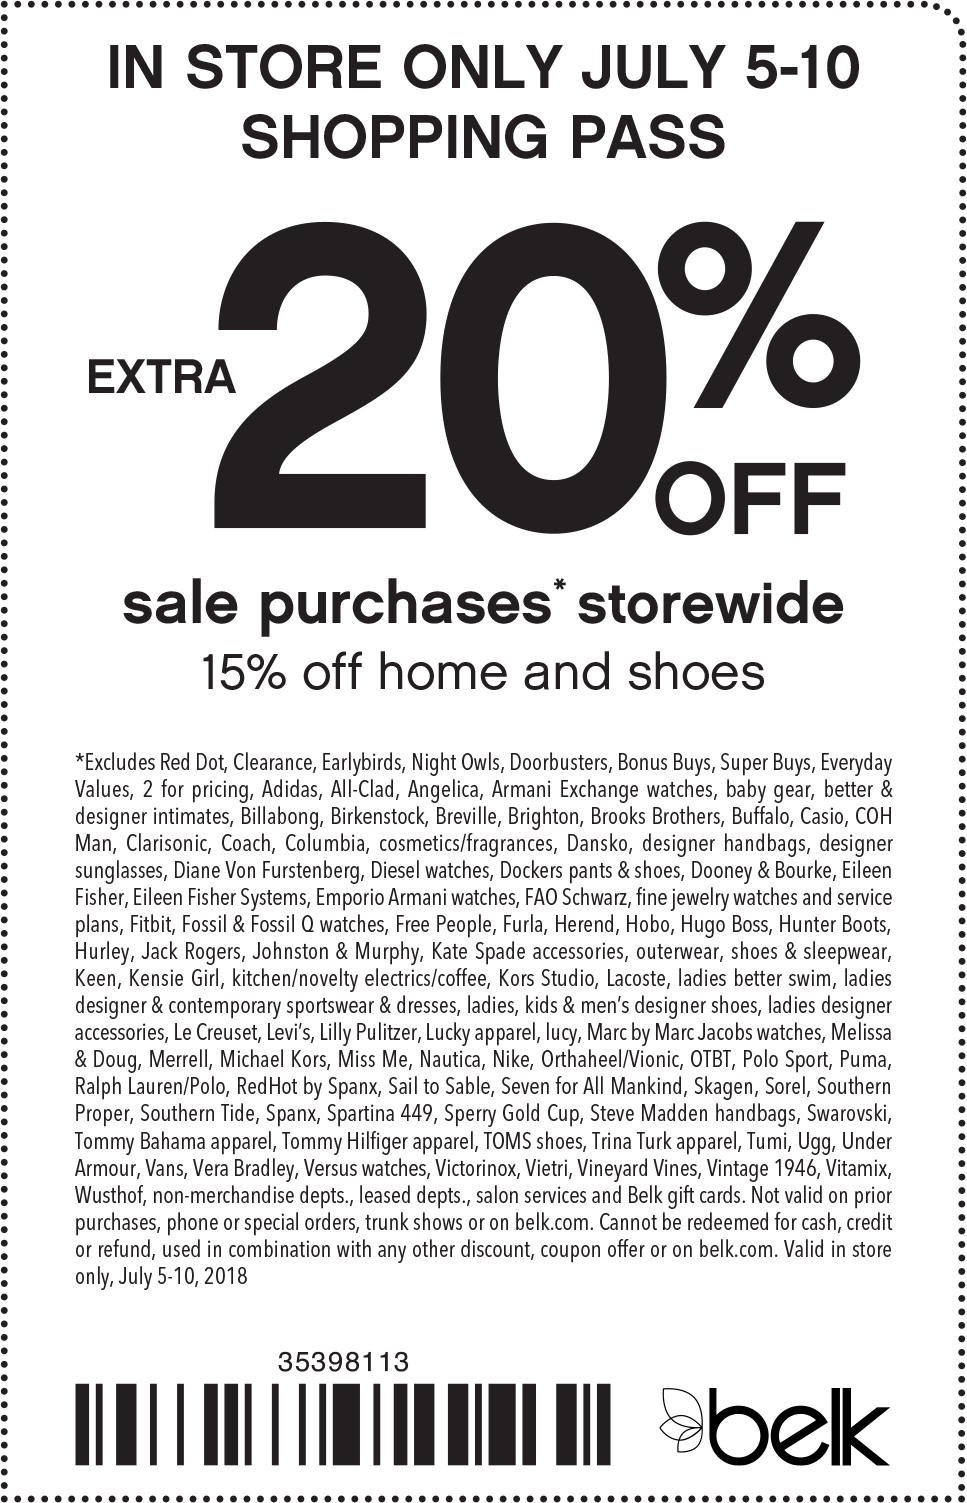 Belk Coupon March 2019 Extra 20% off sale items at Belk